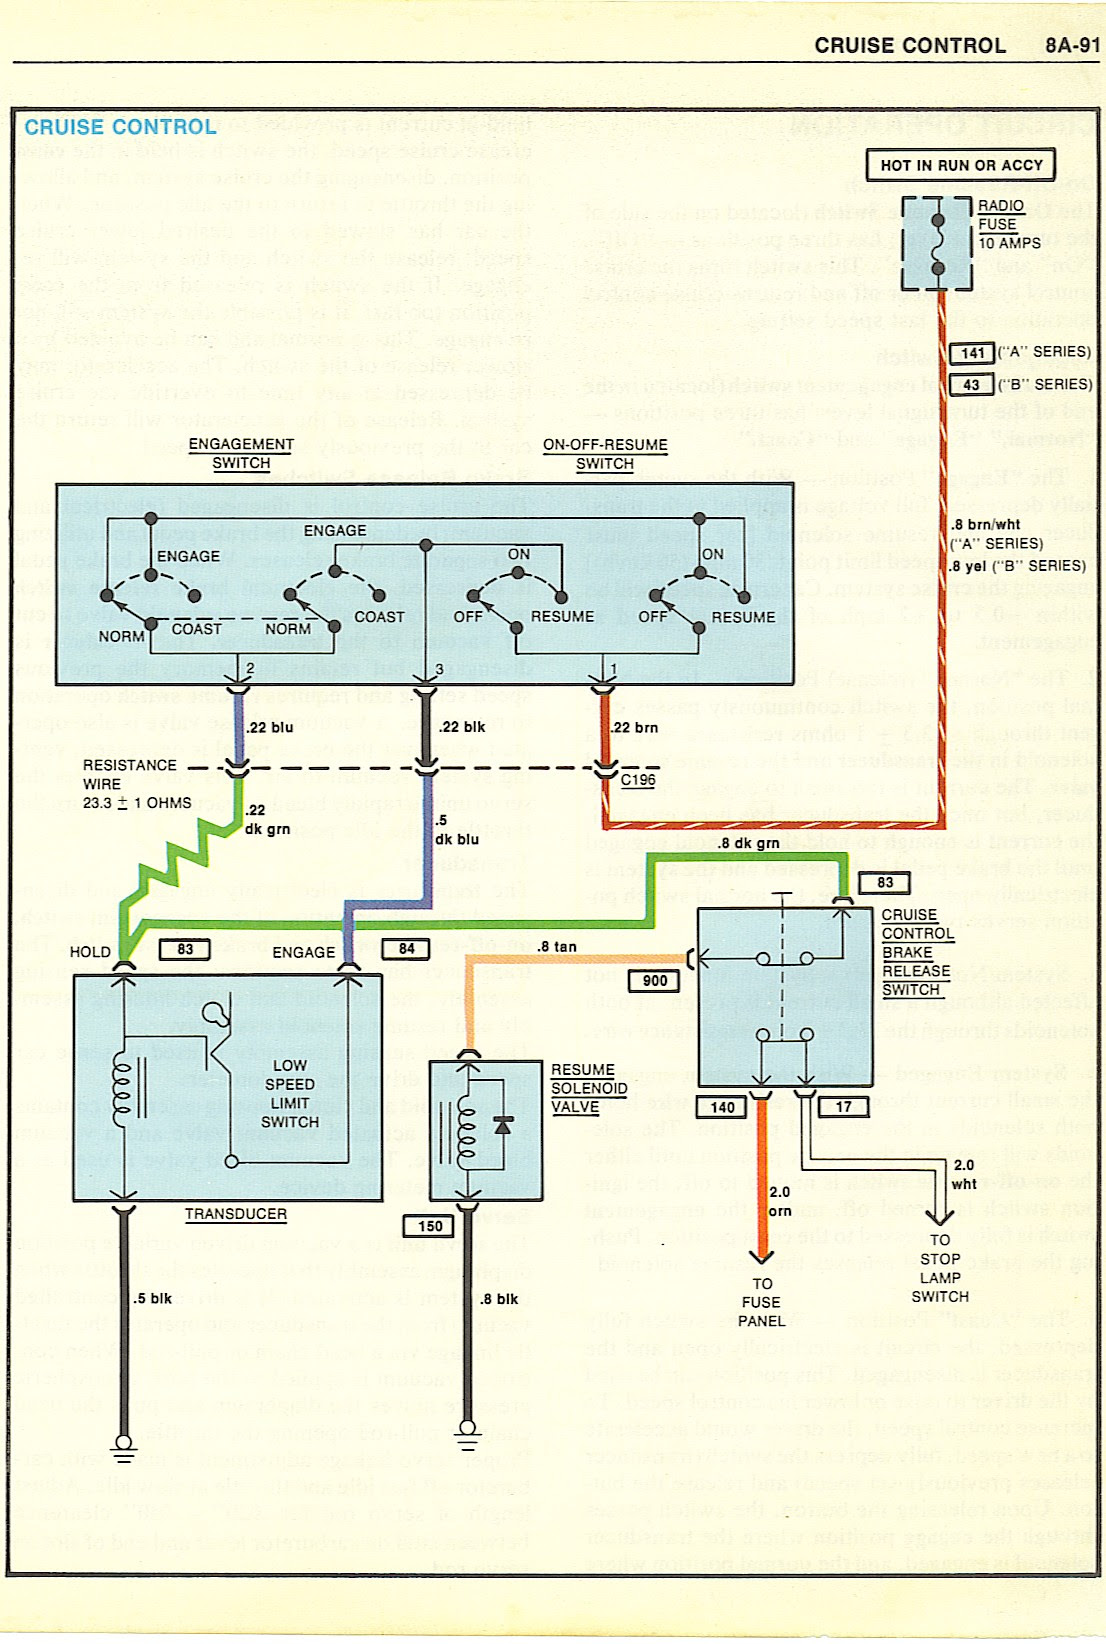 Diagram Genset Control Wiring Diagram Full Version Hd Quality Wiring Diagram Modwiring18 Newsetvlucera It